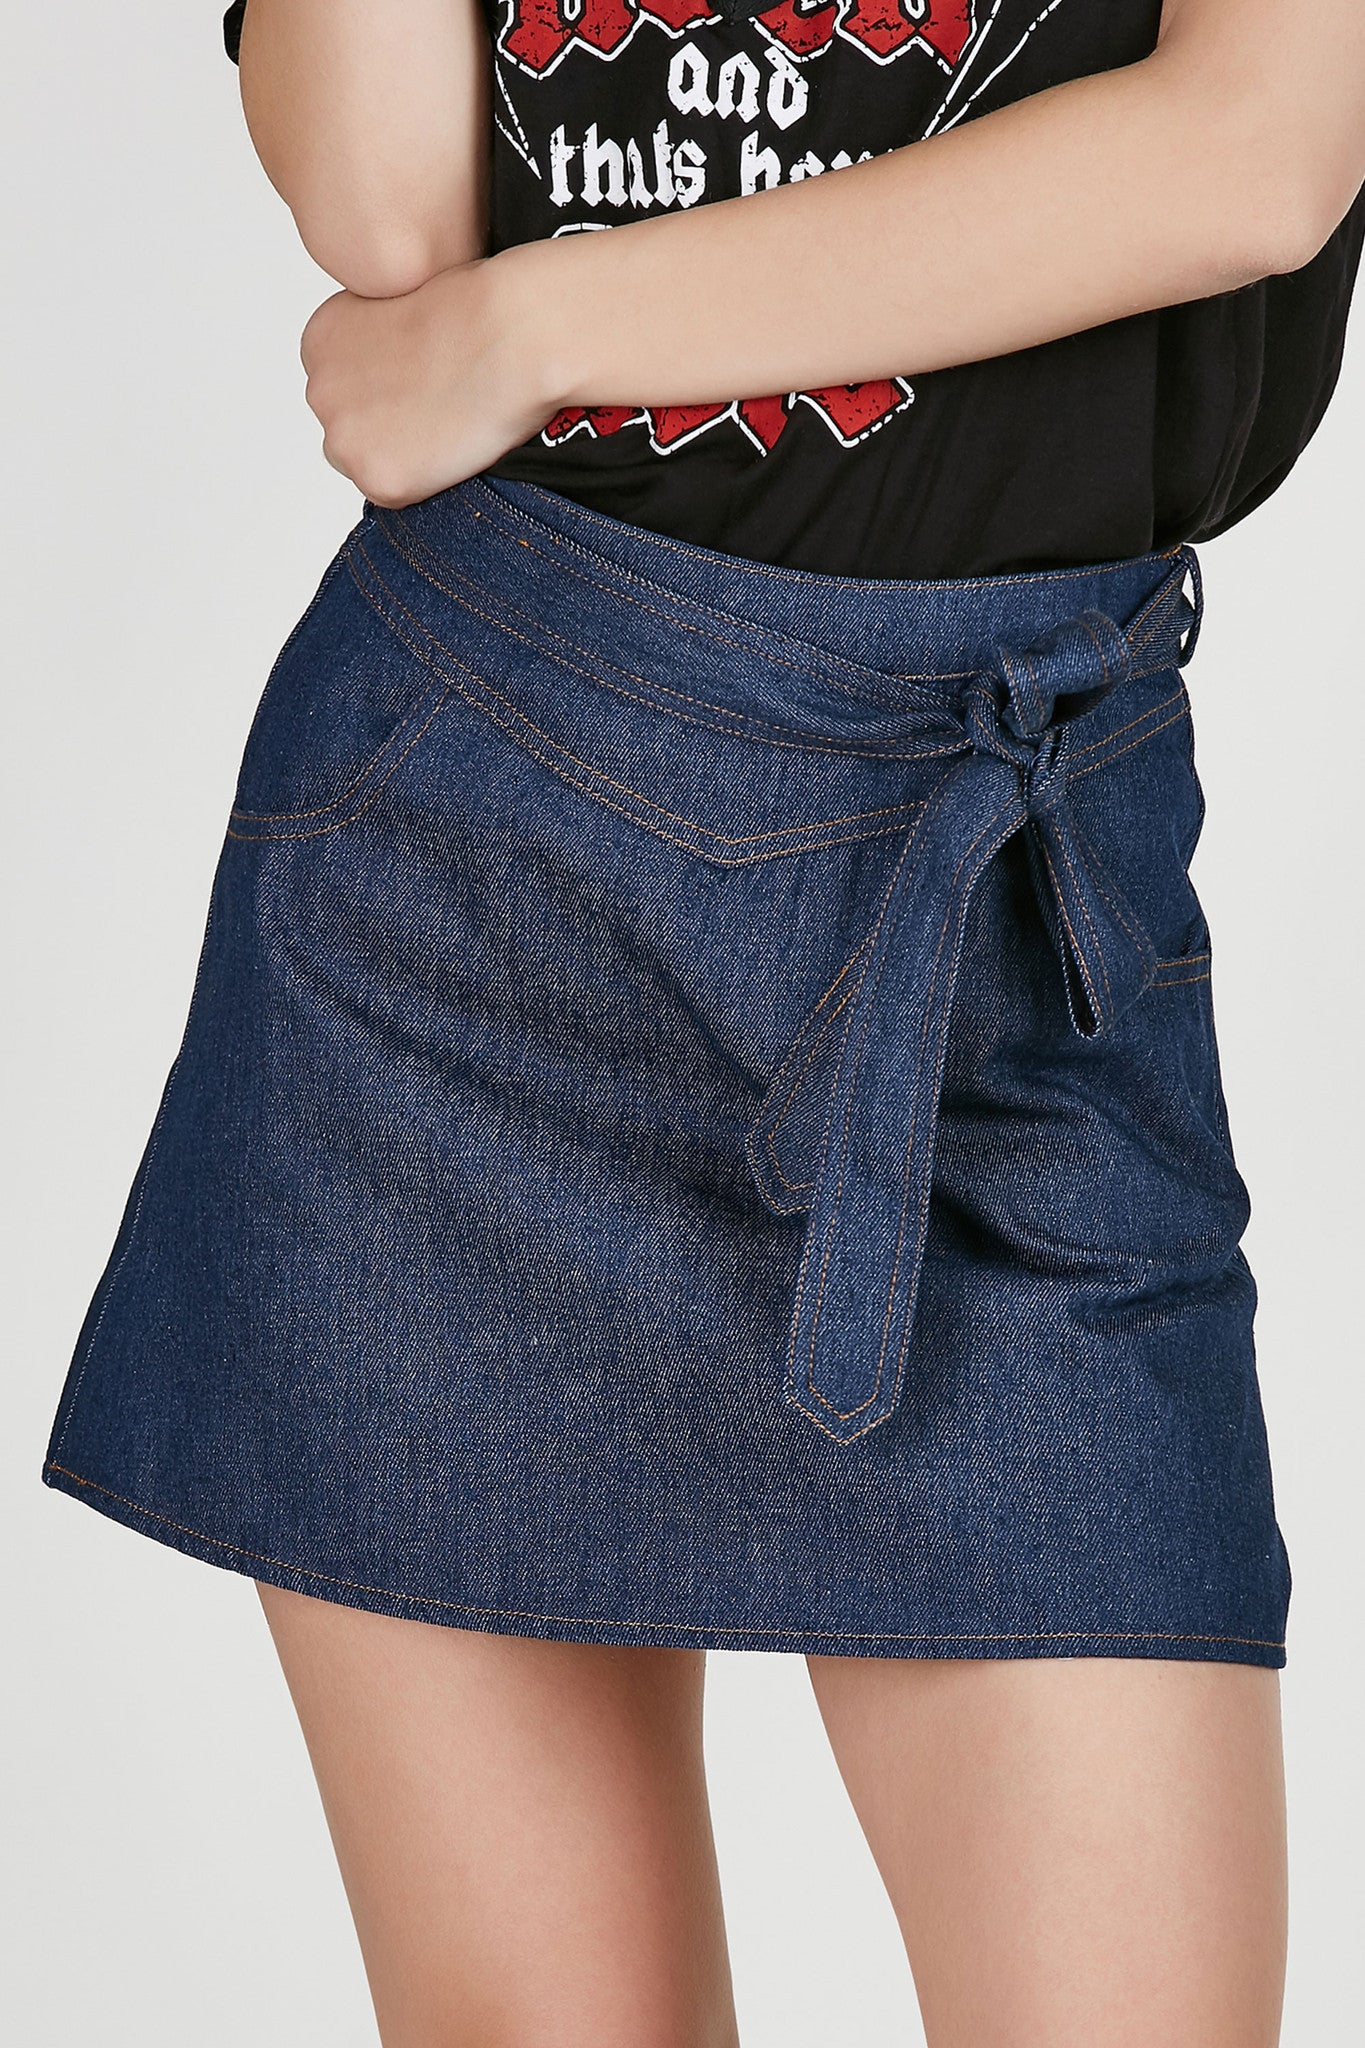 High rise denim mini skirt with tie at waist for added detail. Two pockets with hidden zip closure in back. Comfortable fit with A-line hem.